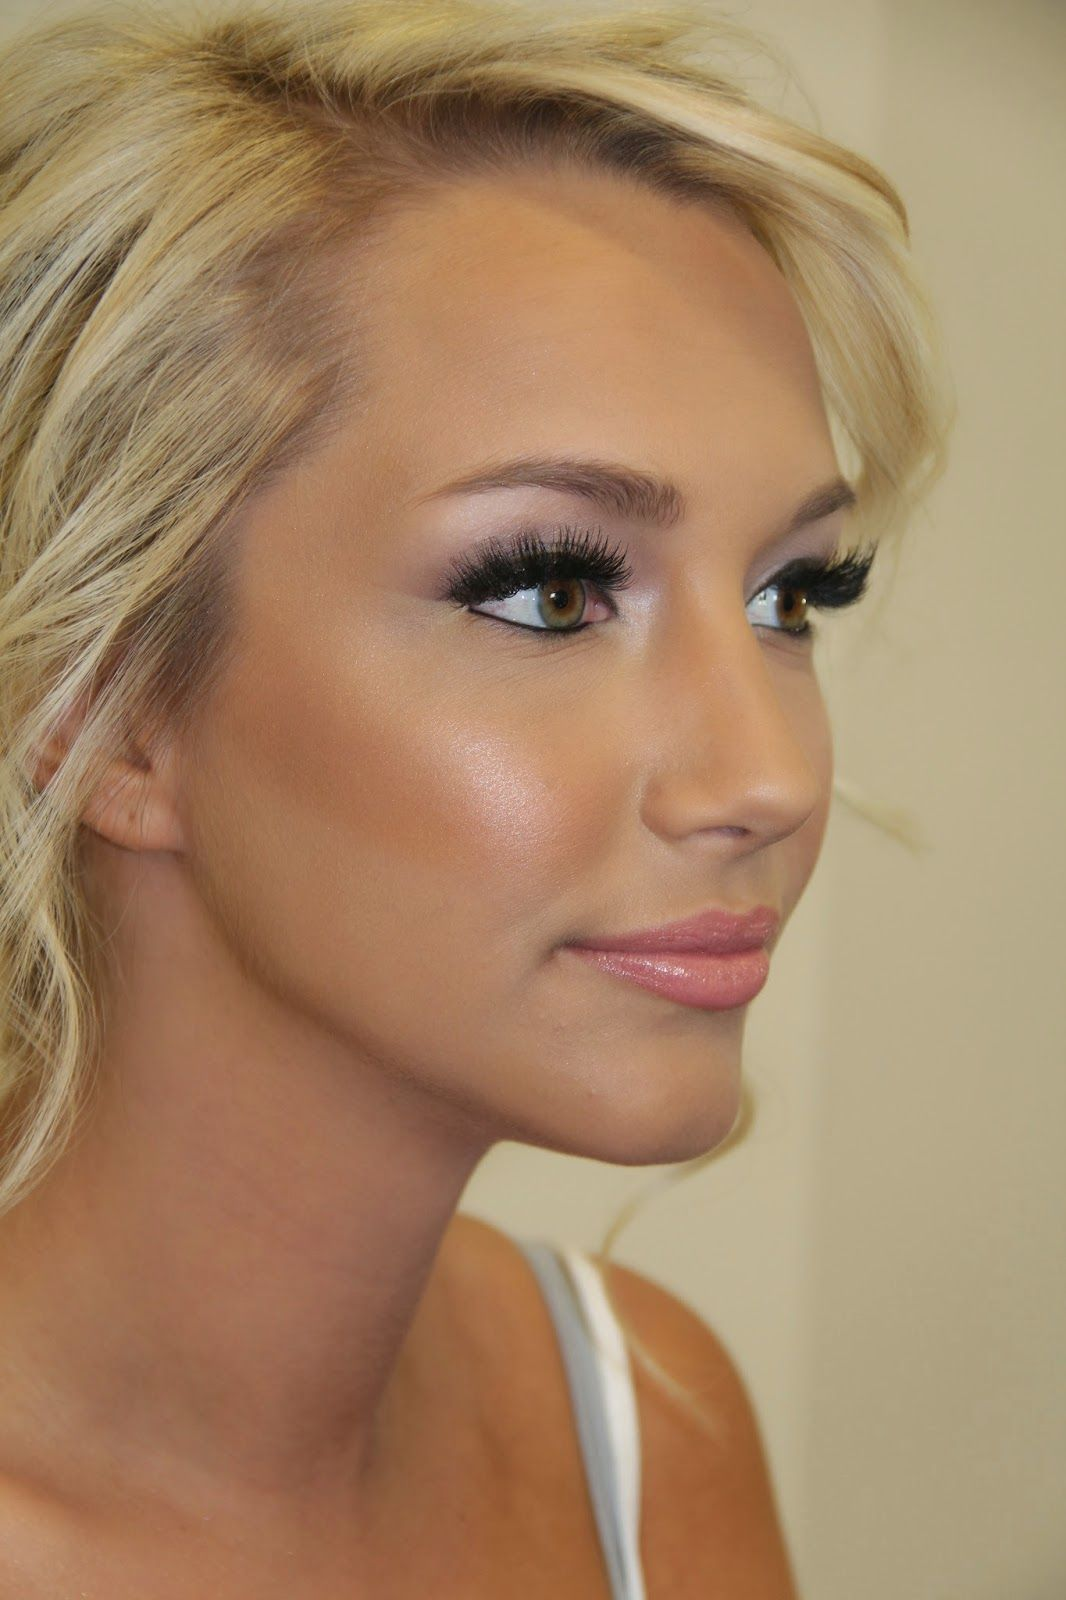 90 Stunning Ideas For Your Wedding Makeup Gettin Hitched